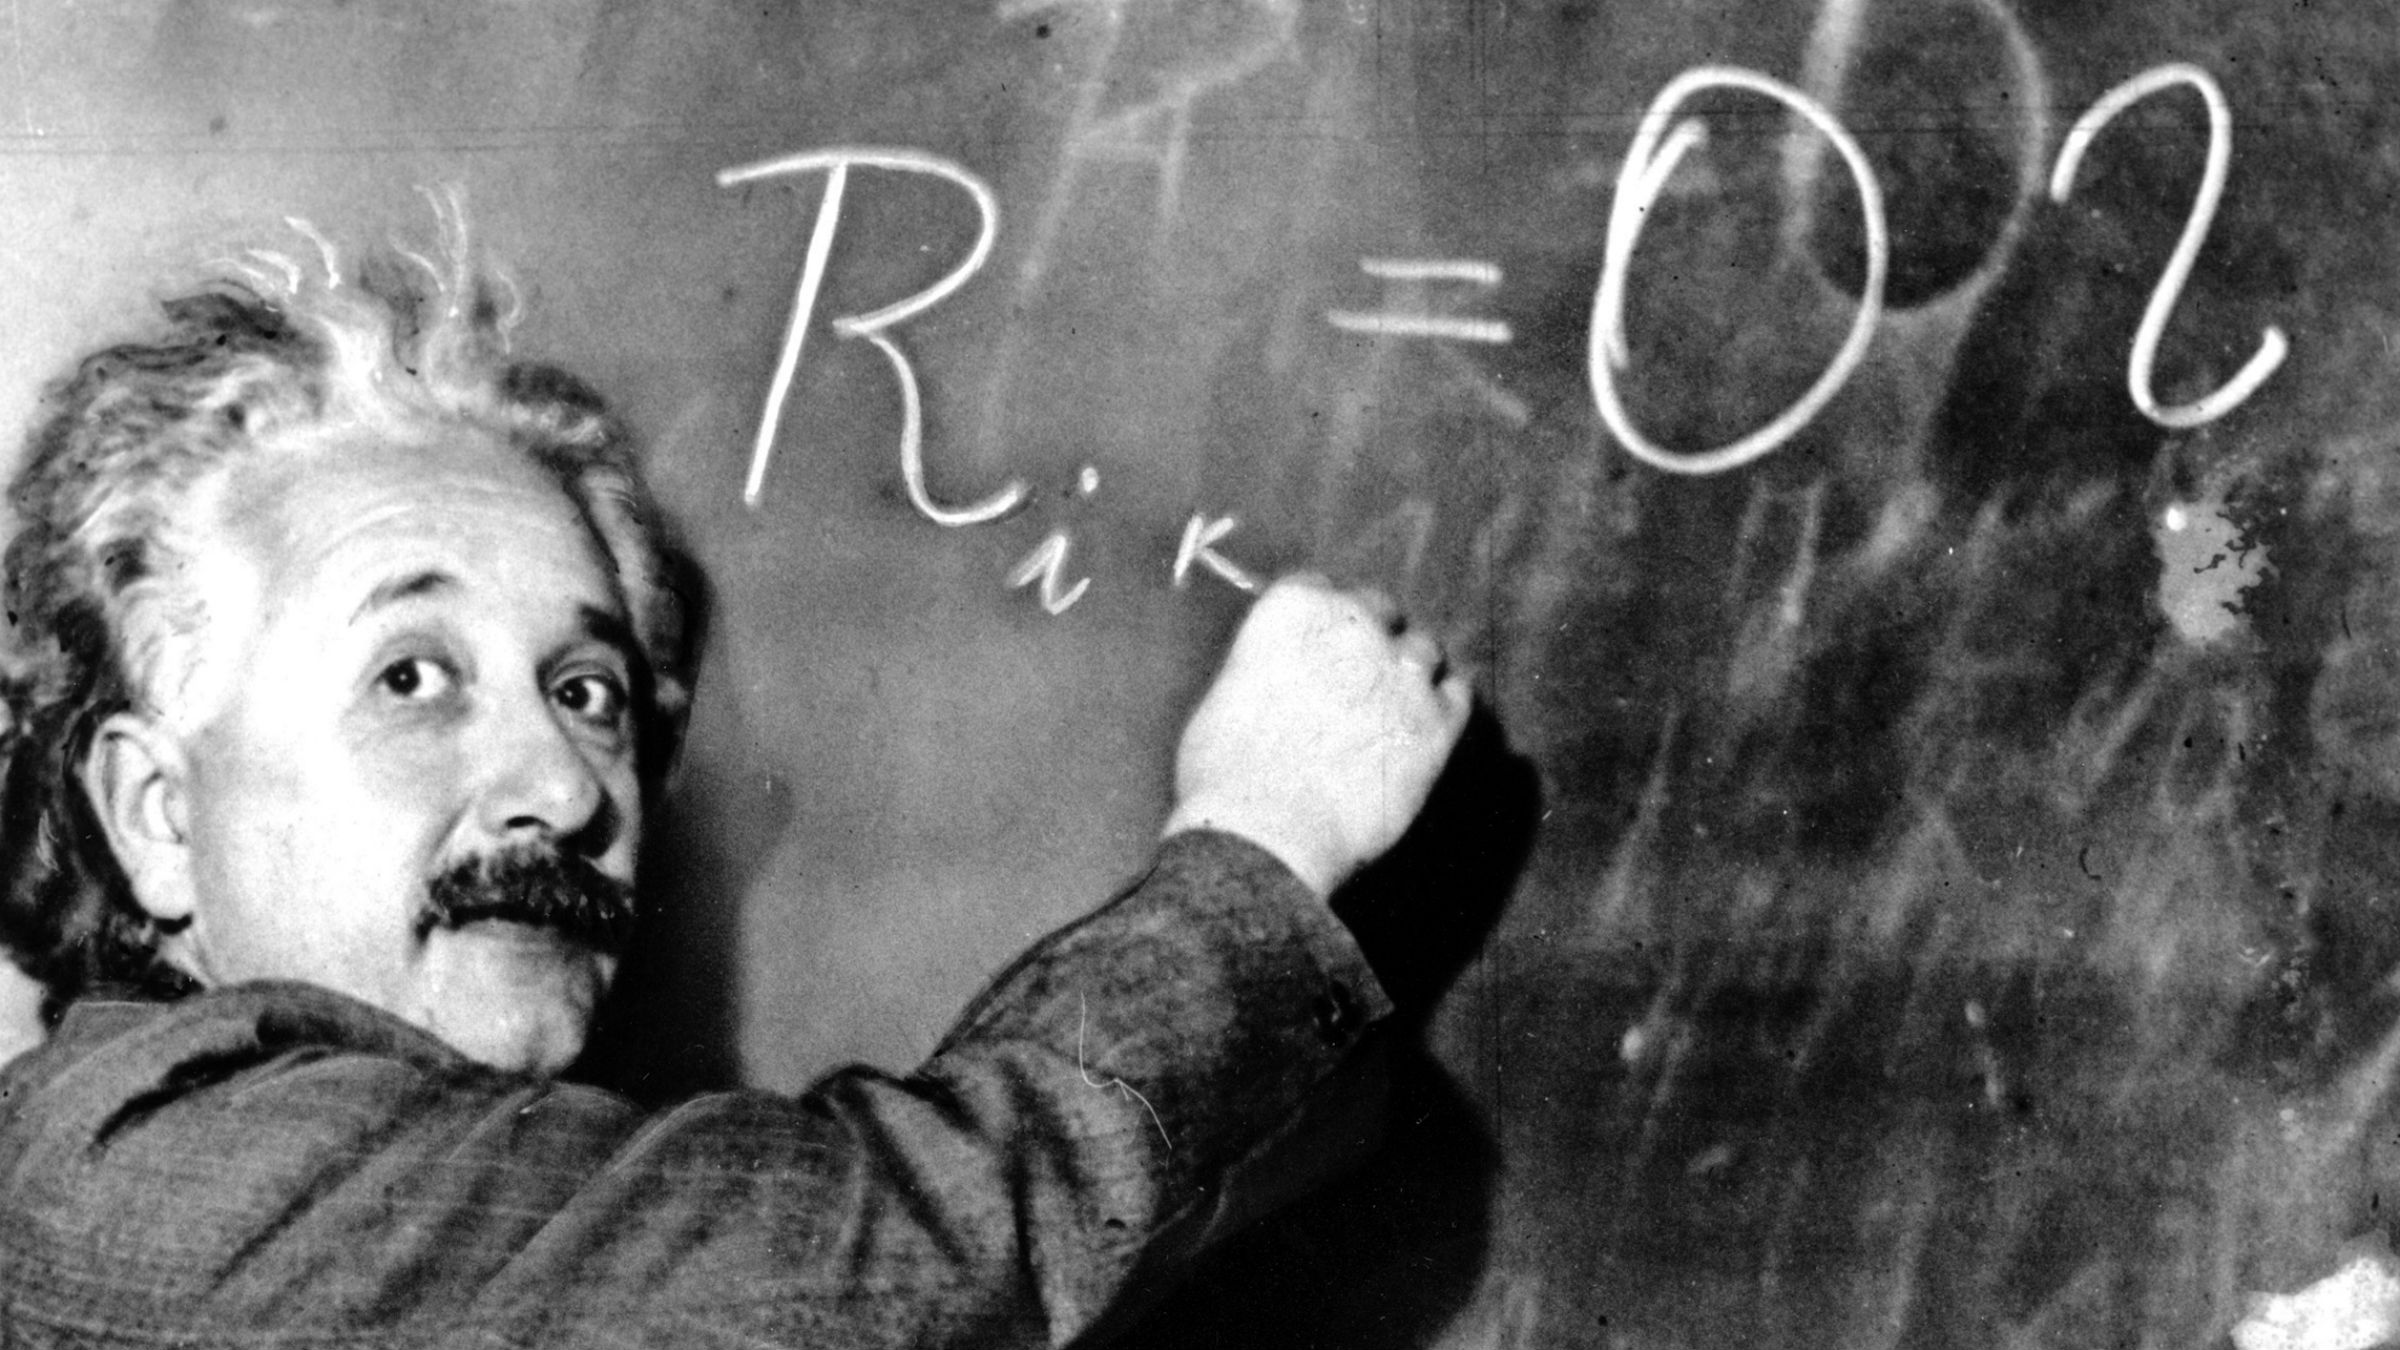 Dr. Albert Einstein writes out an equation for the density of the Milky Way on the blackboard at the Carnegie Institute, Mt. Wilson Observatory headquarters in Pasadena, Calif., on Jan. 14, 1931. Einstein achieved world reknown in 1905, at age 26, when he expounded his Special Theory of Relativity which proposed the existence of atomic energy. Though his concepts ushered in the atomic age, he was a pacifist who warned against the arms race. Einstein, who radically changed mankind's vision of the universe, was awarded the Nobel Prize for Physics in 1921. (AP Photo)